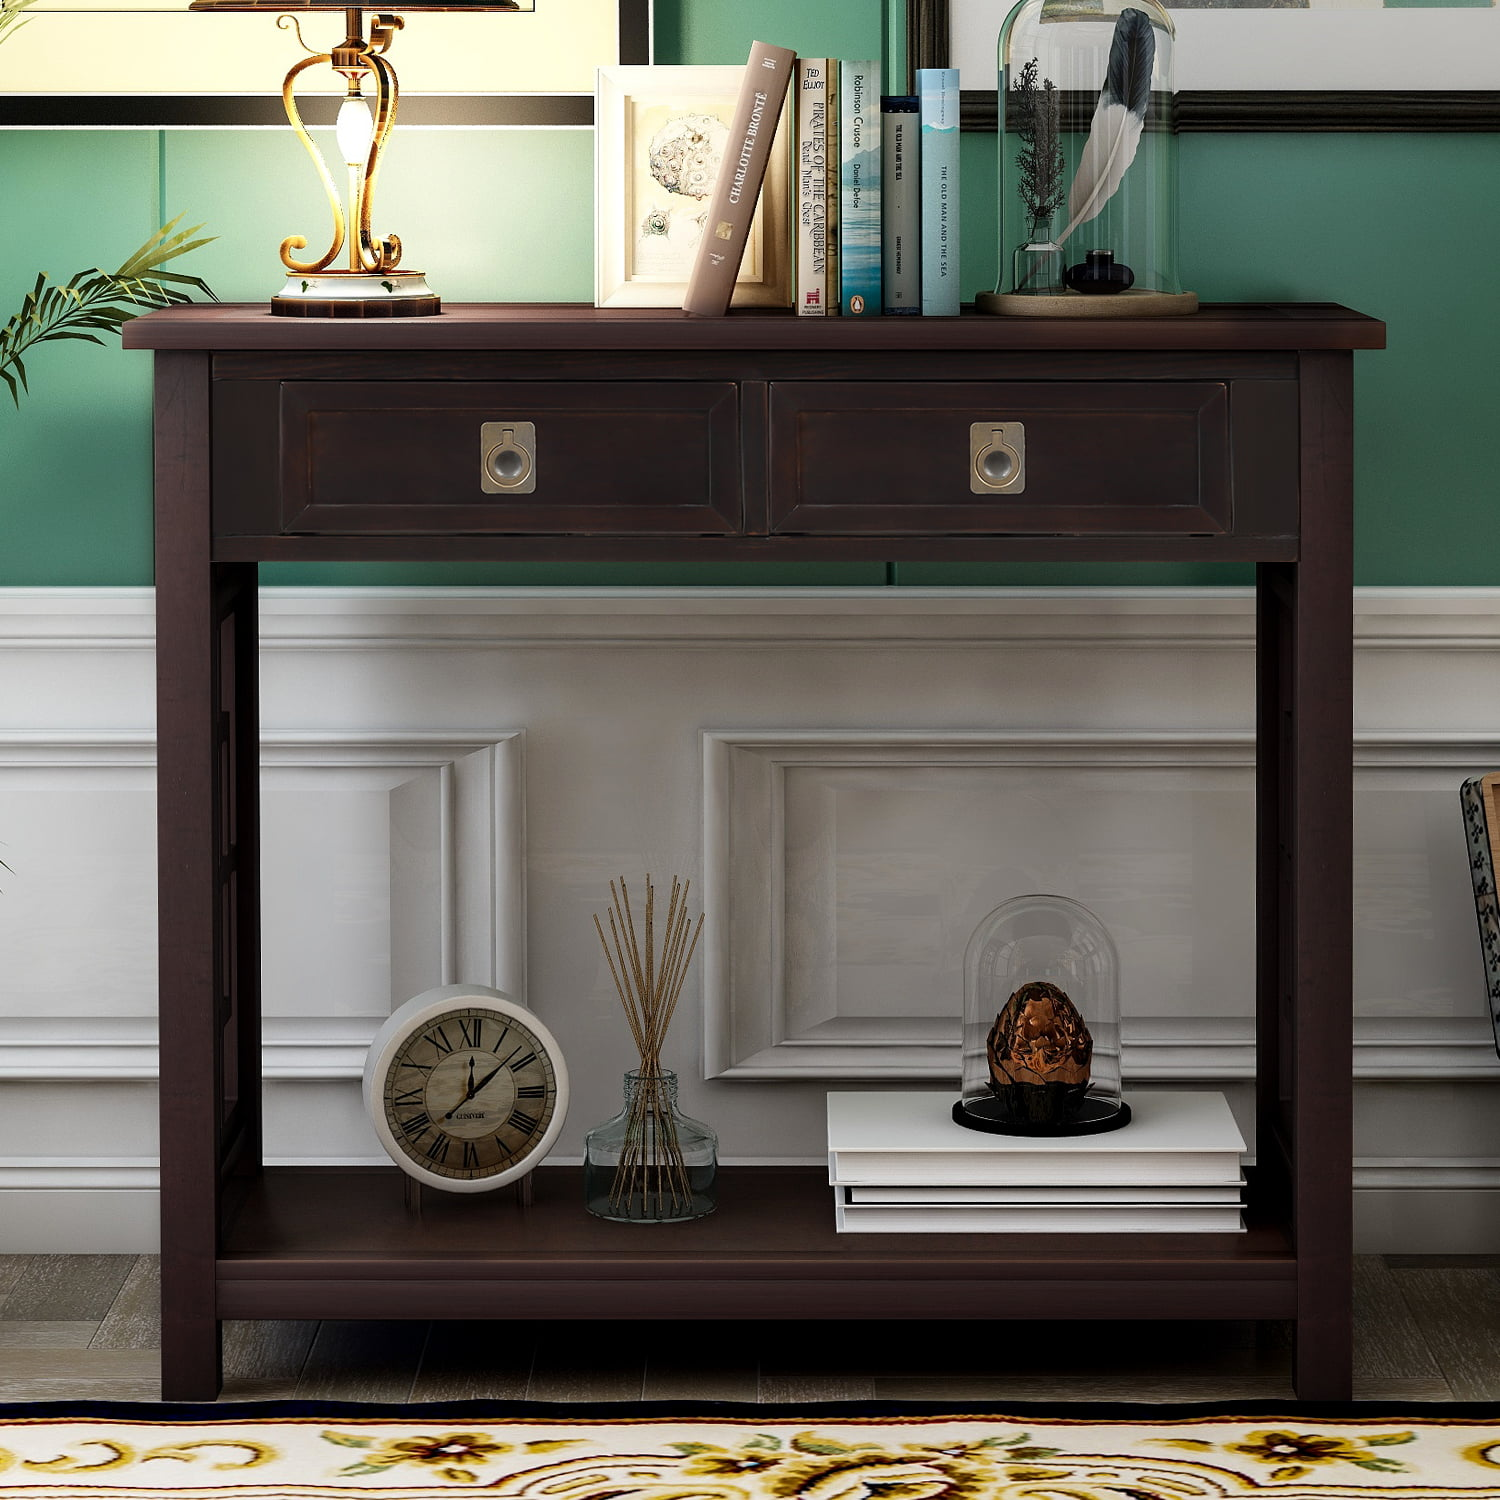 Entryway Table with Storage Drawer, BTMWAY Farmhouse Narrow